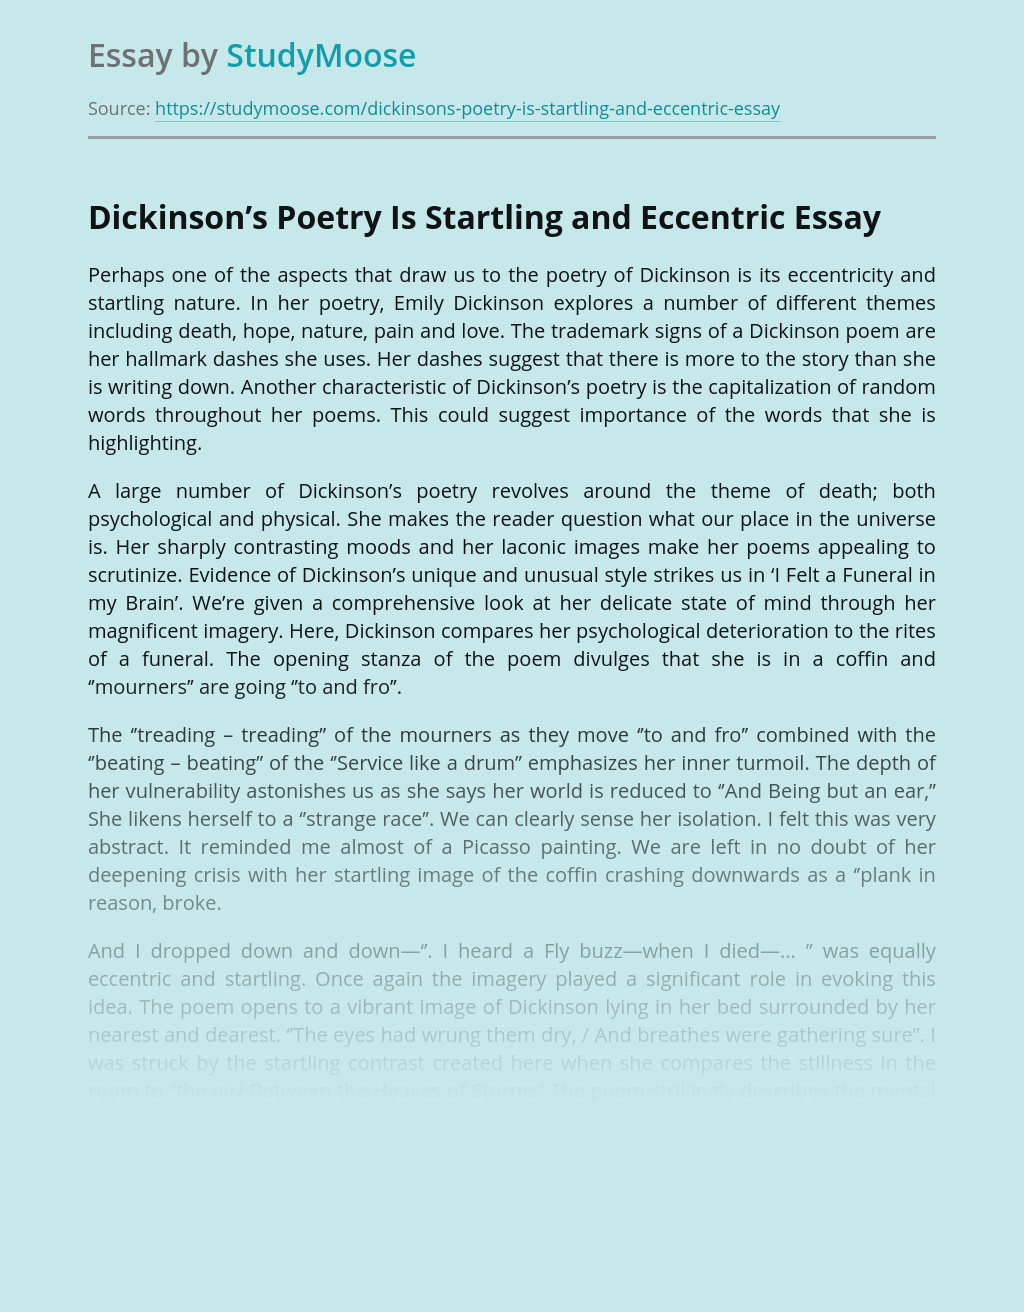 Dickinson's Poetry Is Startling and Eccentric